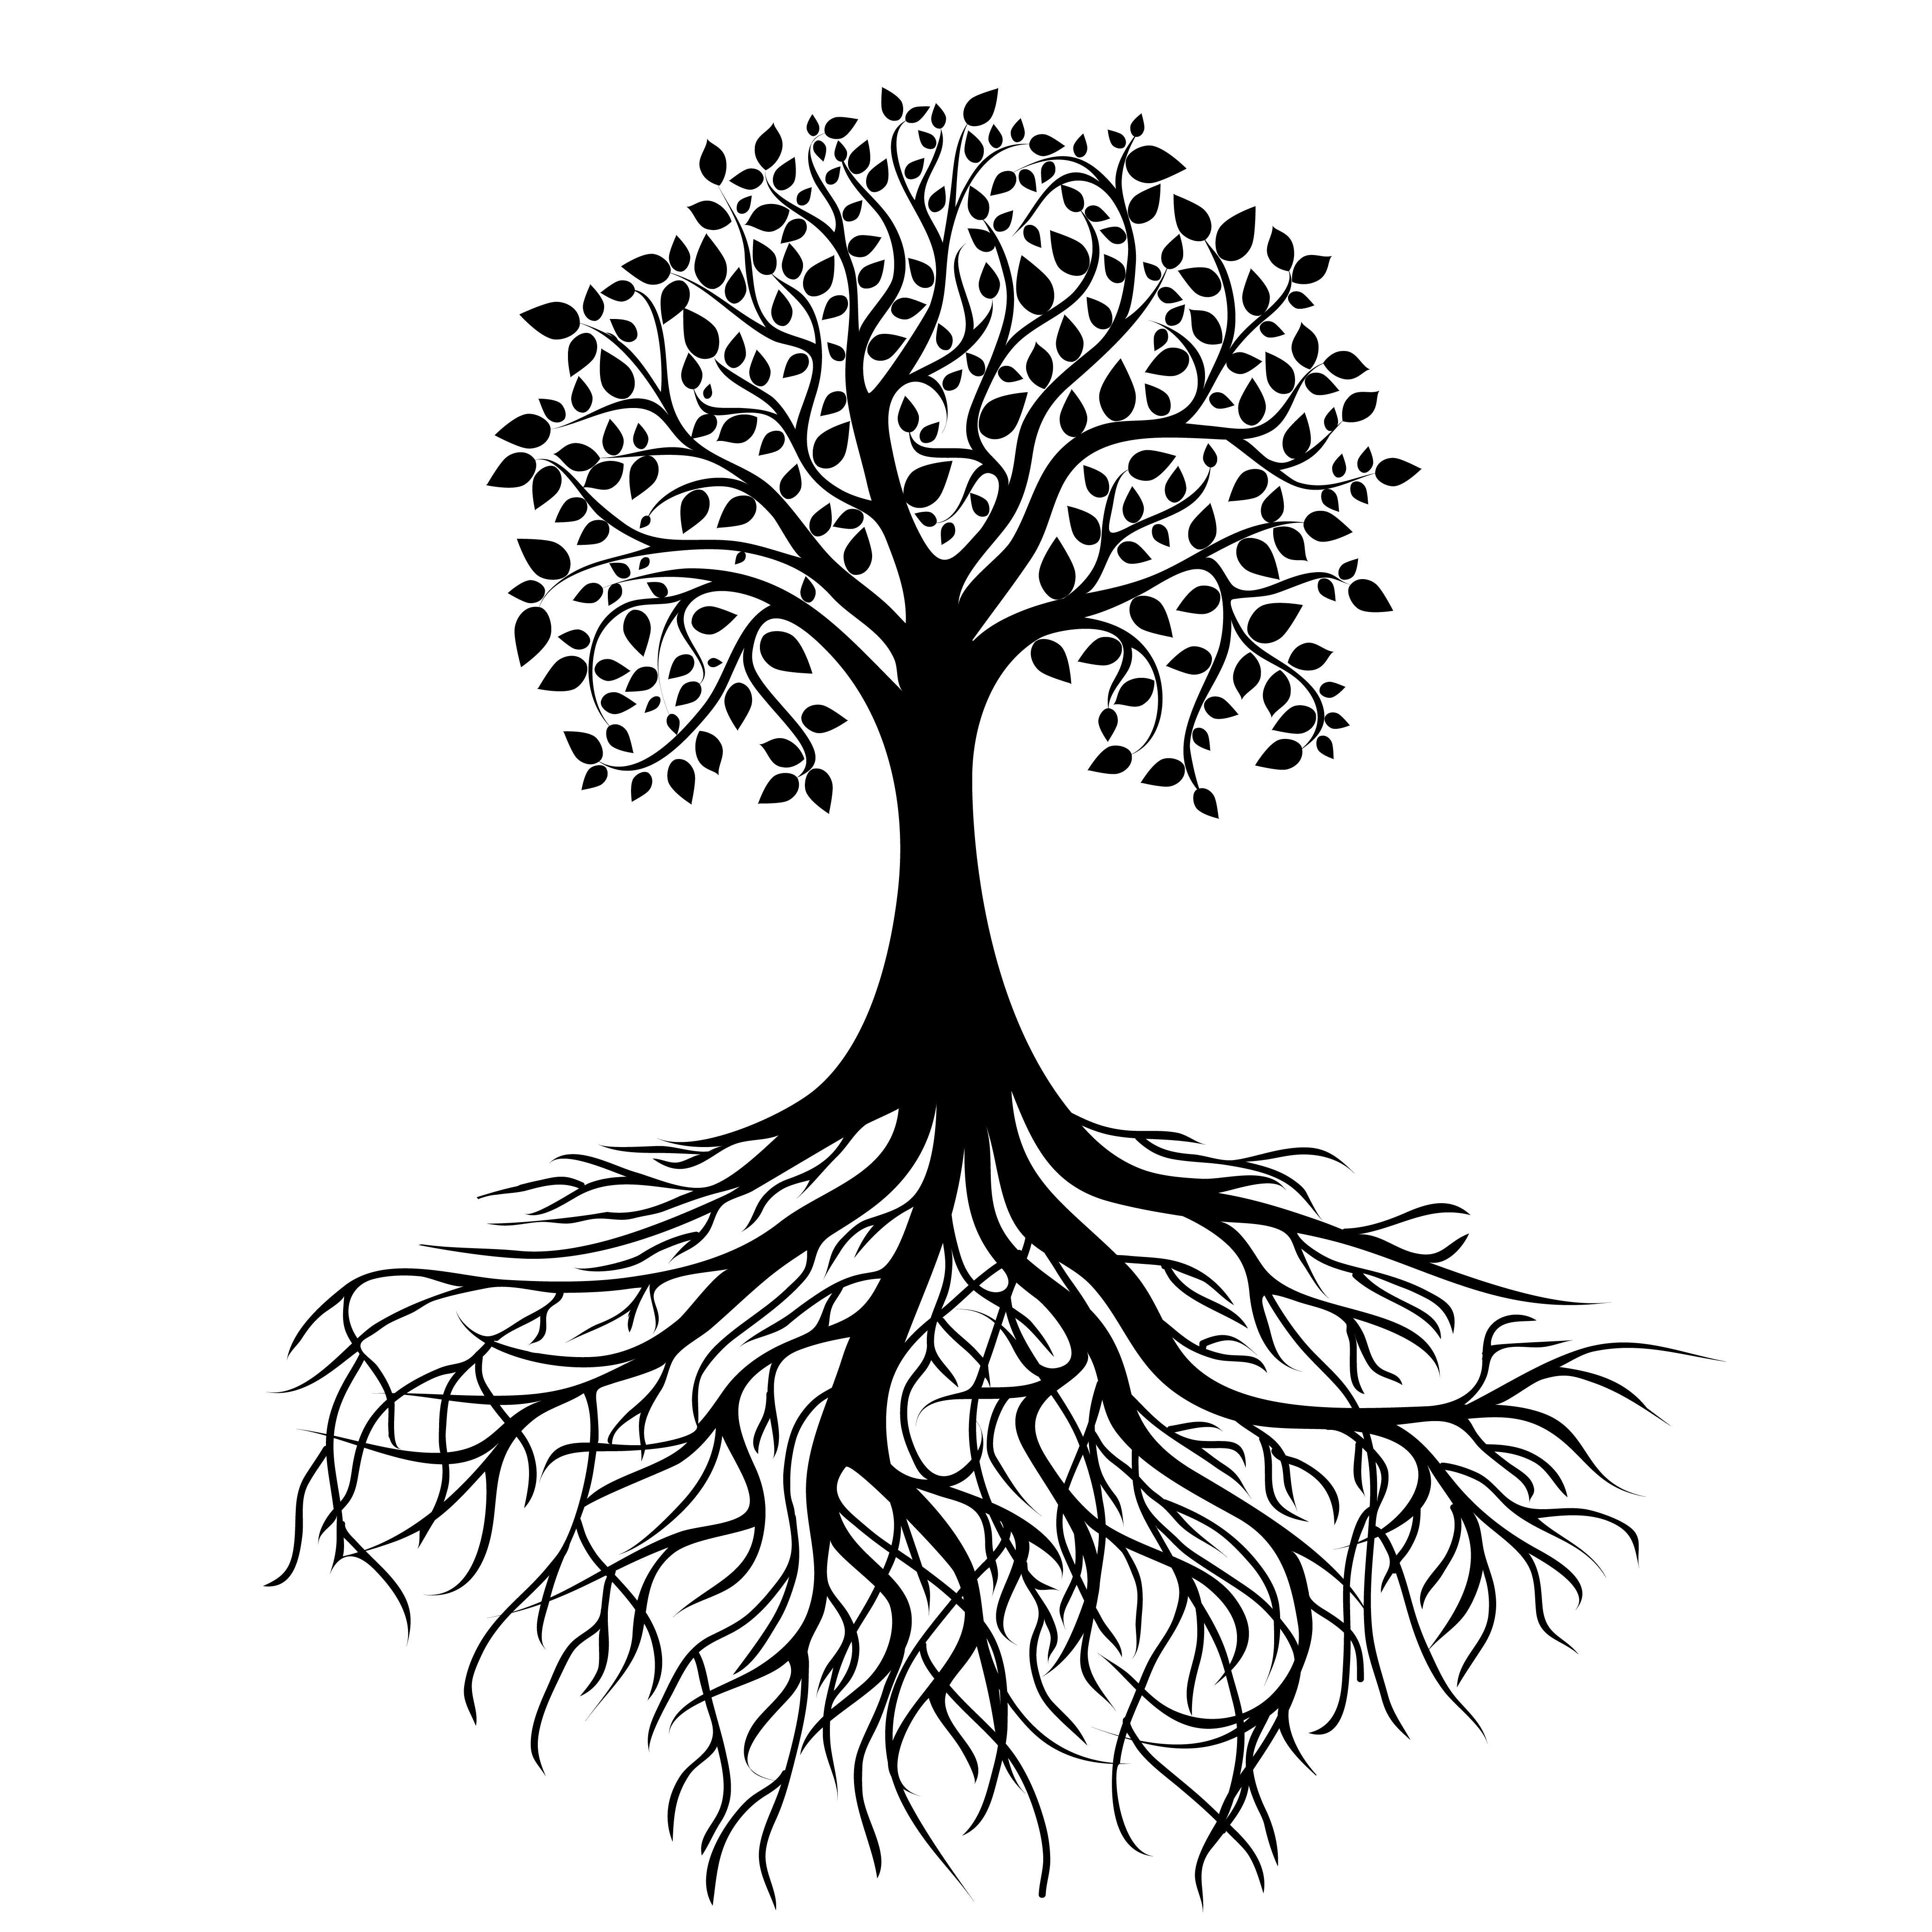 4167x4167 Tree Roots Png The writing tree Old House Pinterest Tree - Black And White Tree Of Life PNG